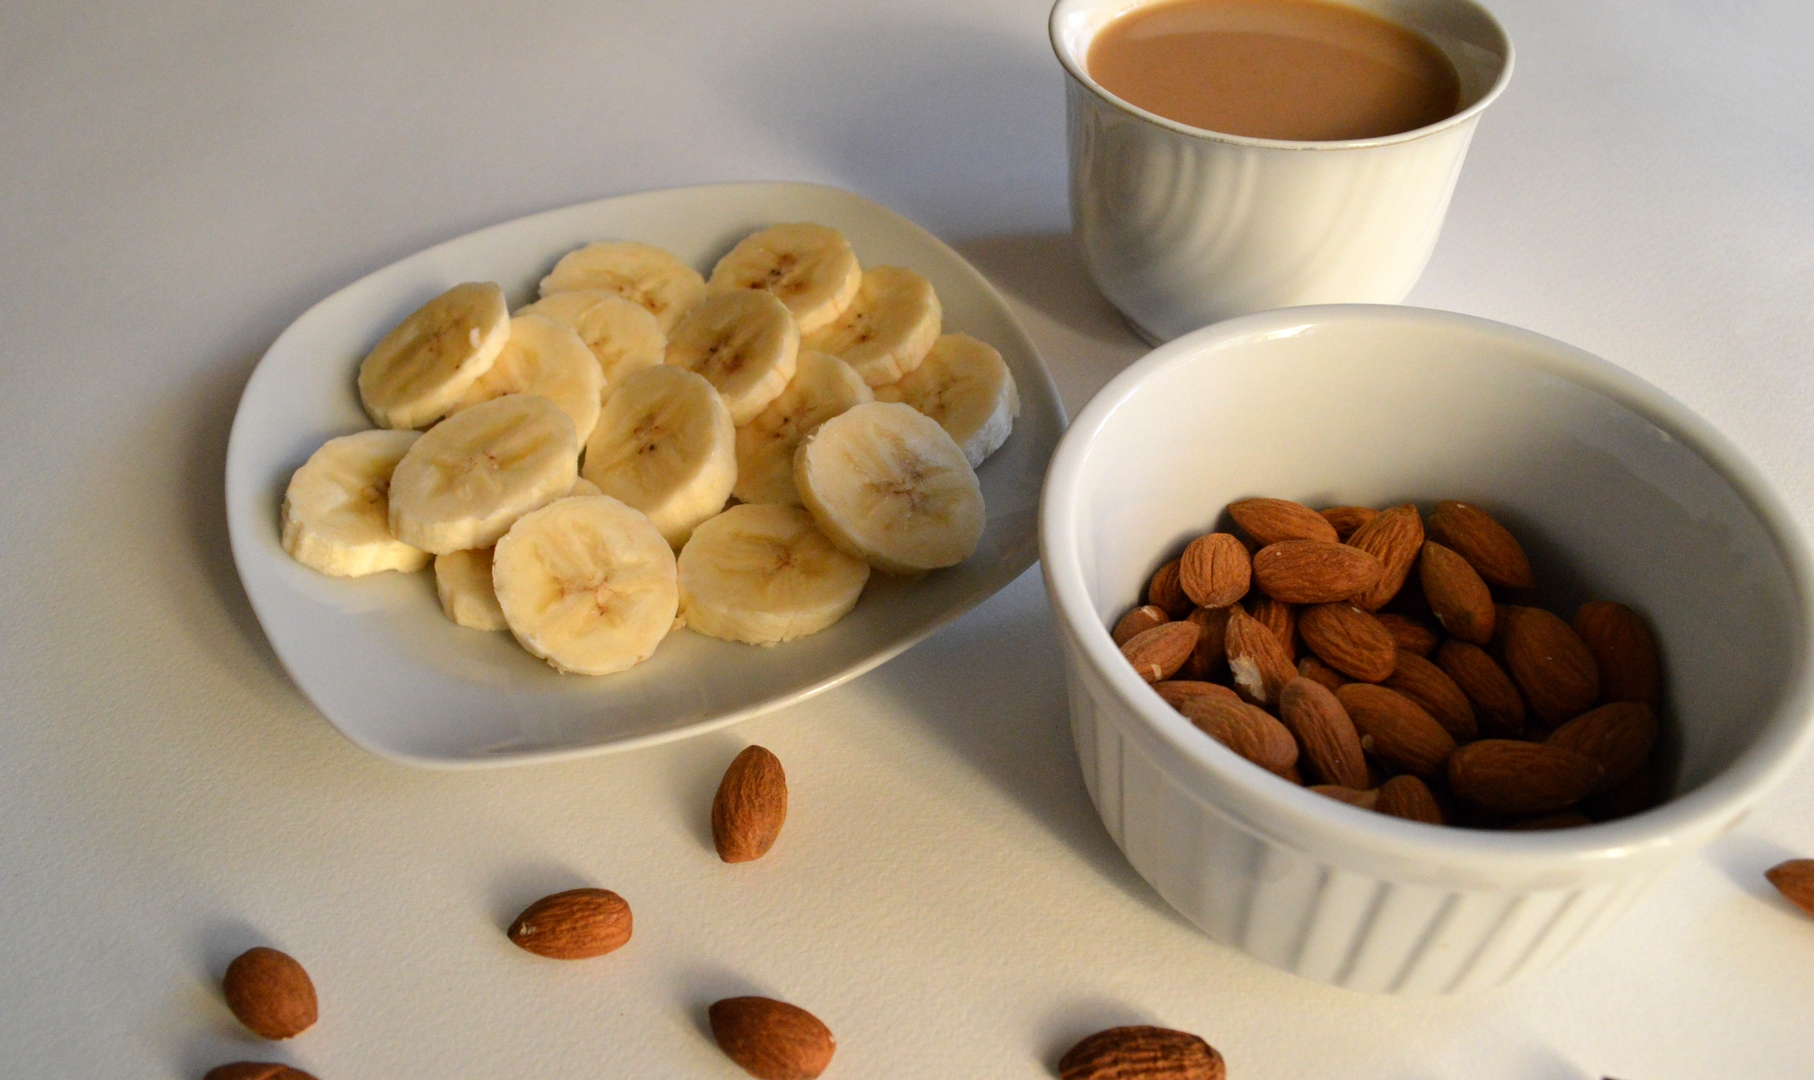 Choose nuts and fruit over crisps and sweets